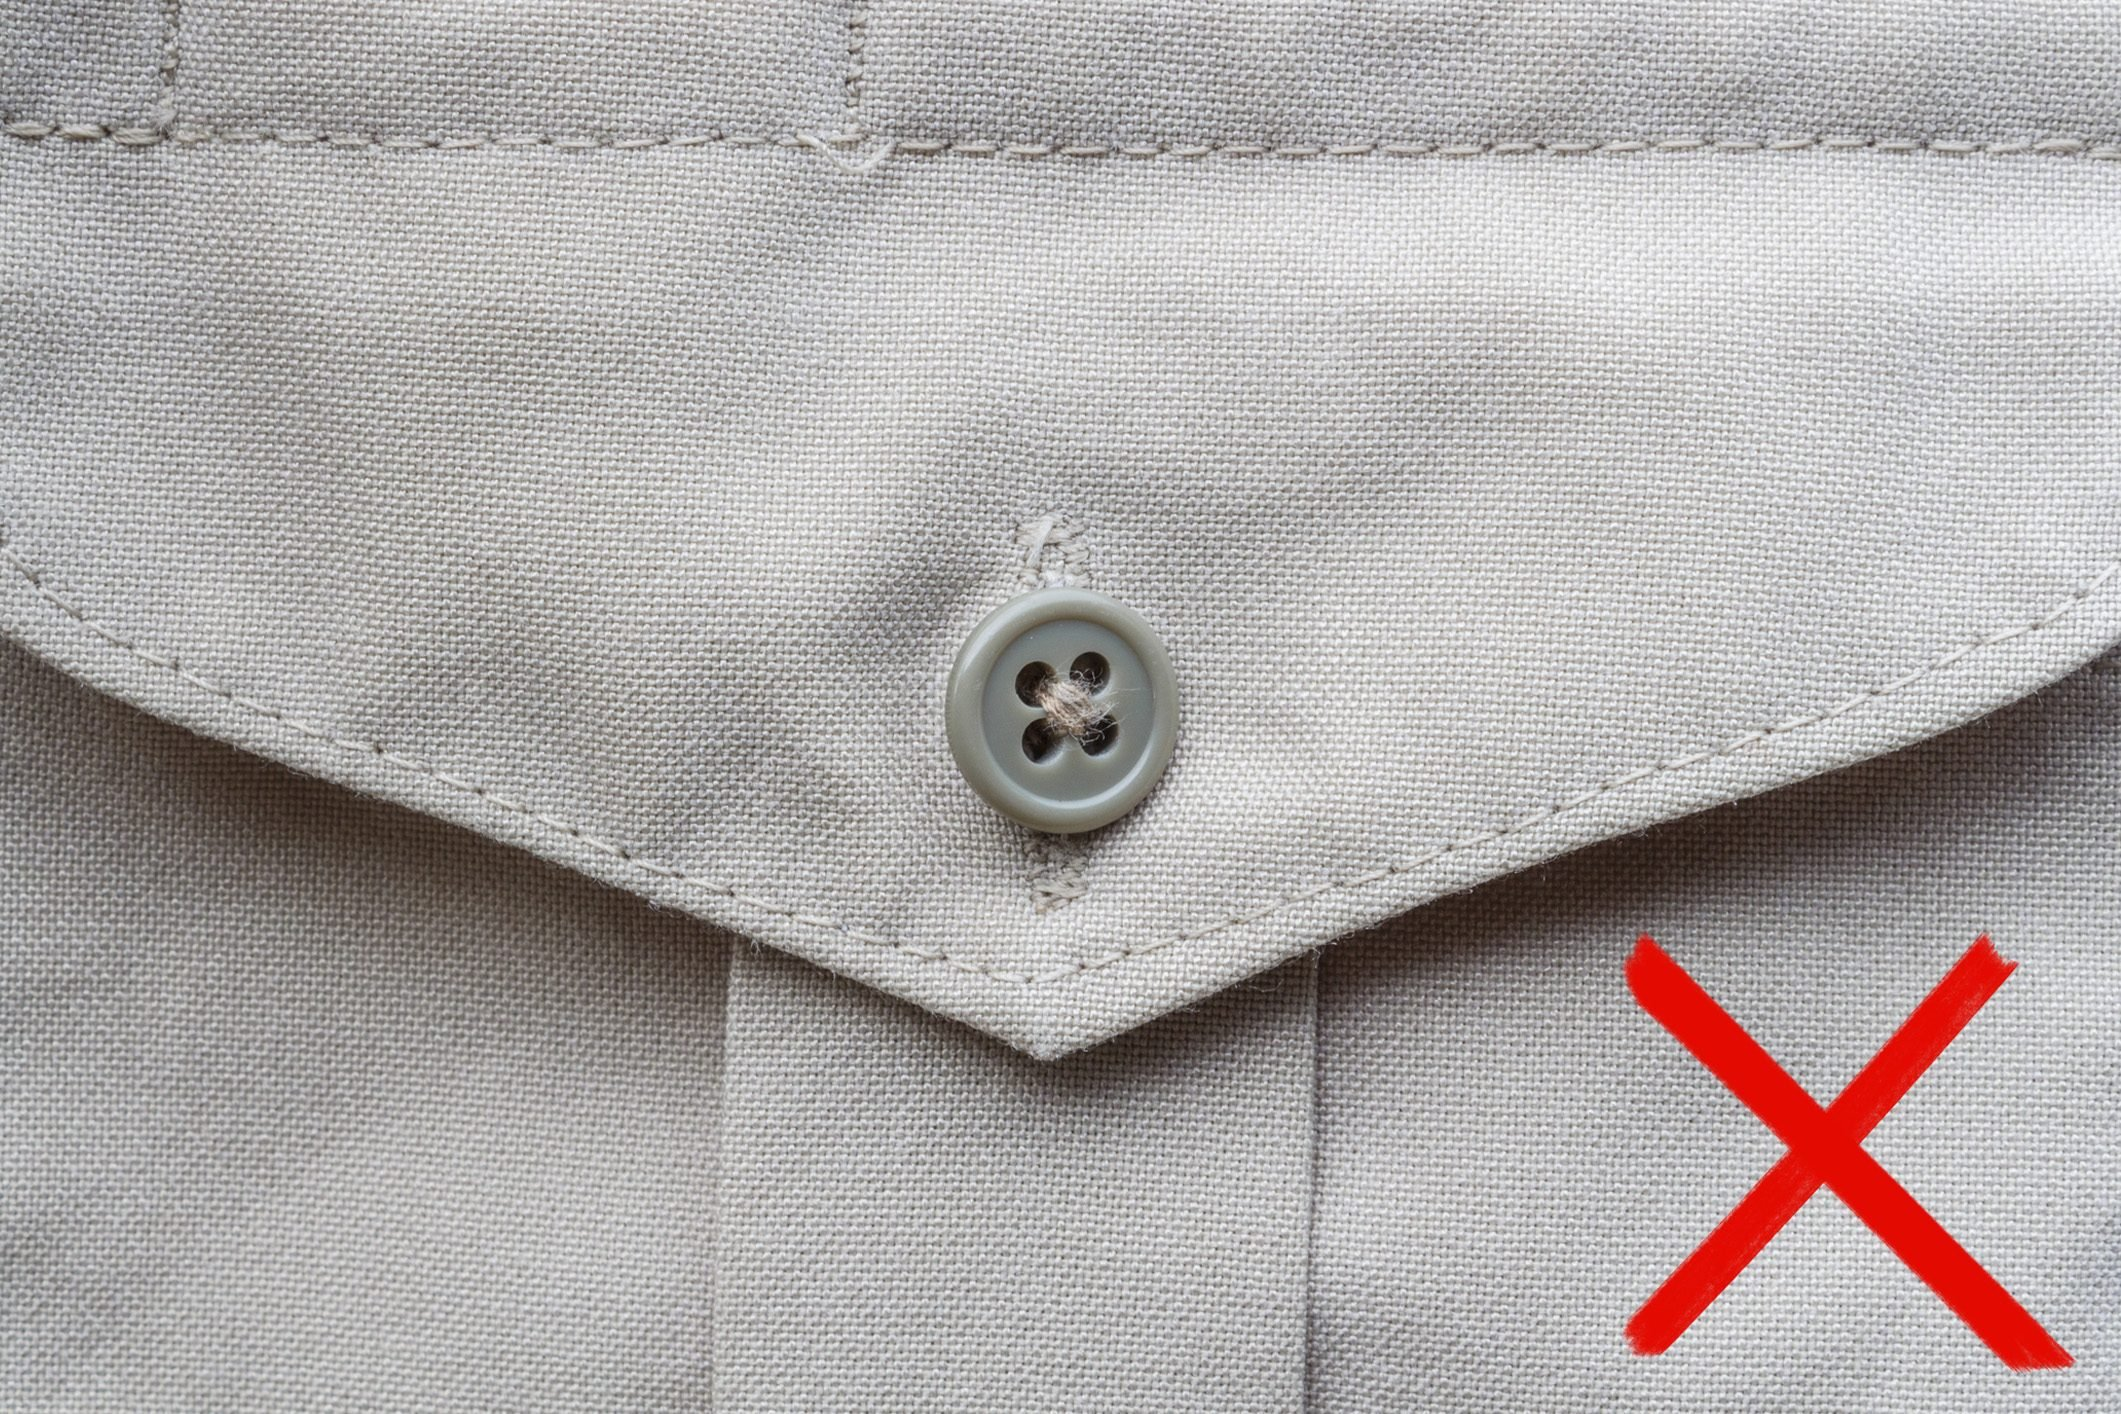 fastened button on a shirt